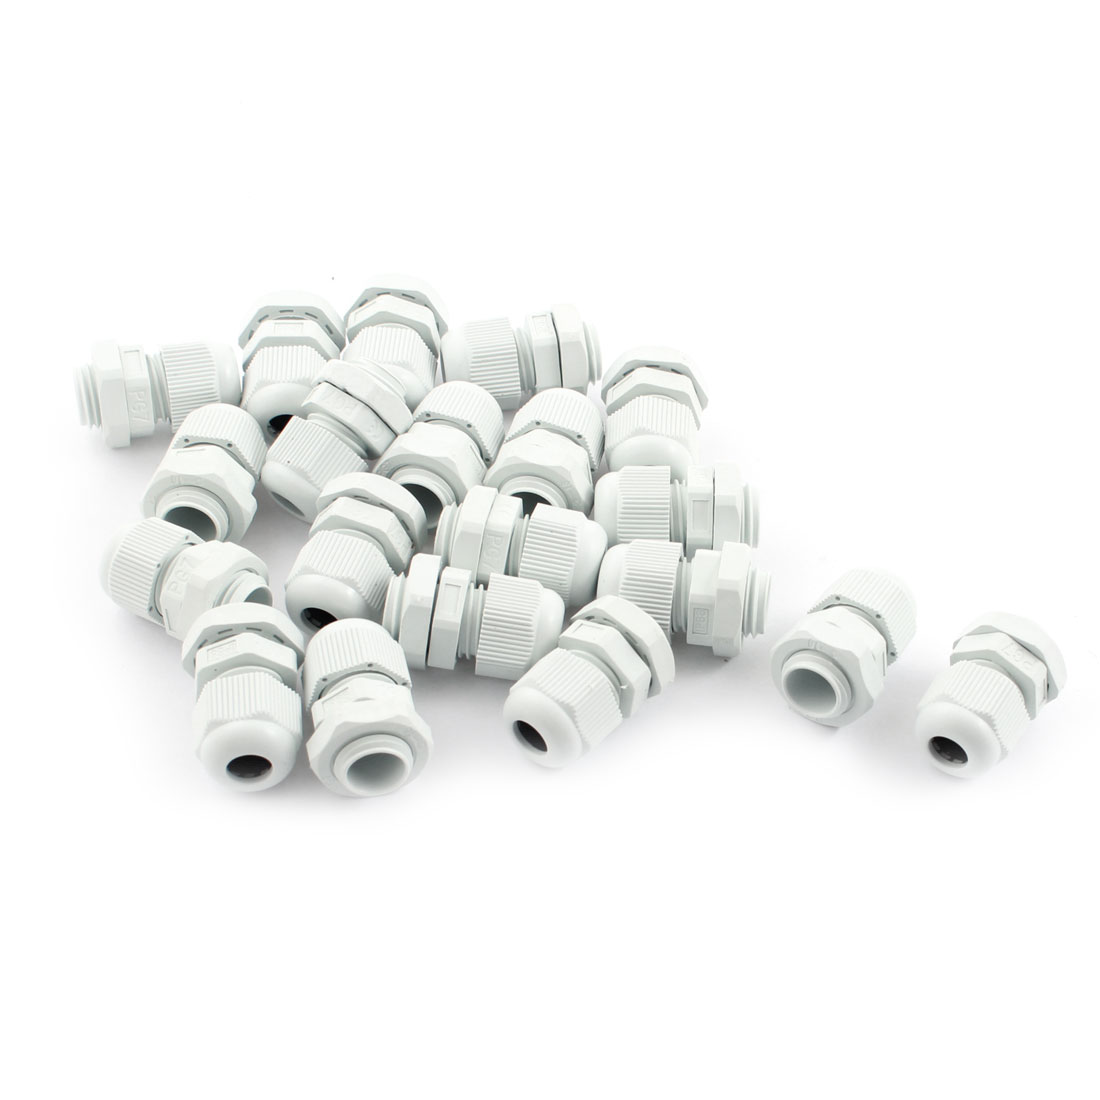 20Pcs Waterproof Gland Connector PG7 w Nut for 3.5-6mm Dia Cable Wire